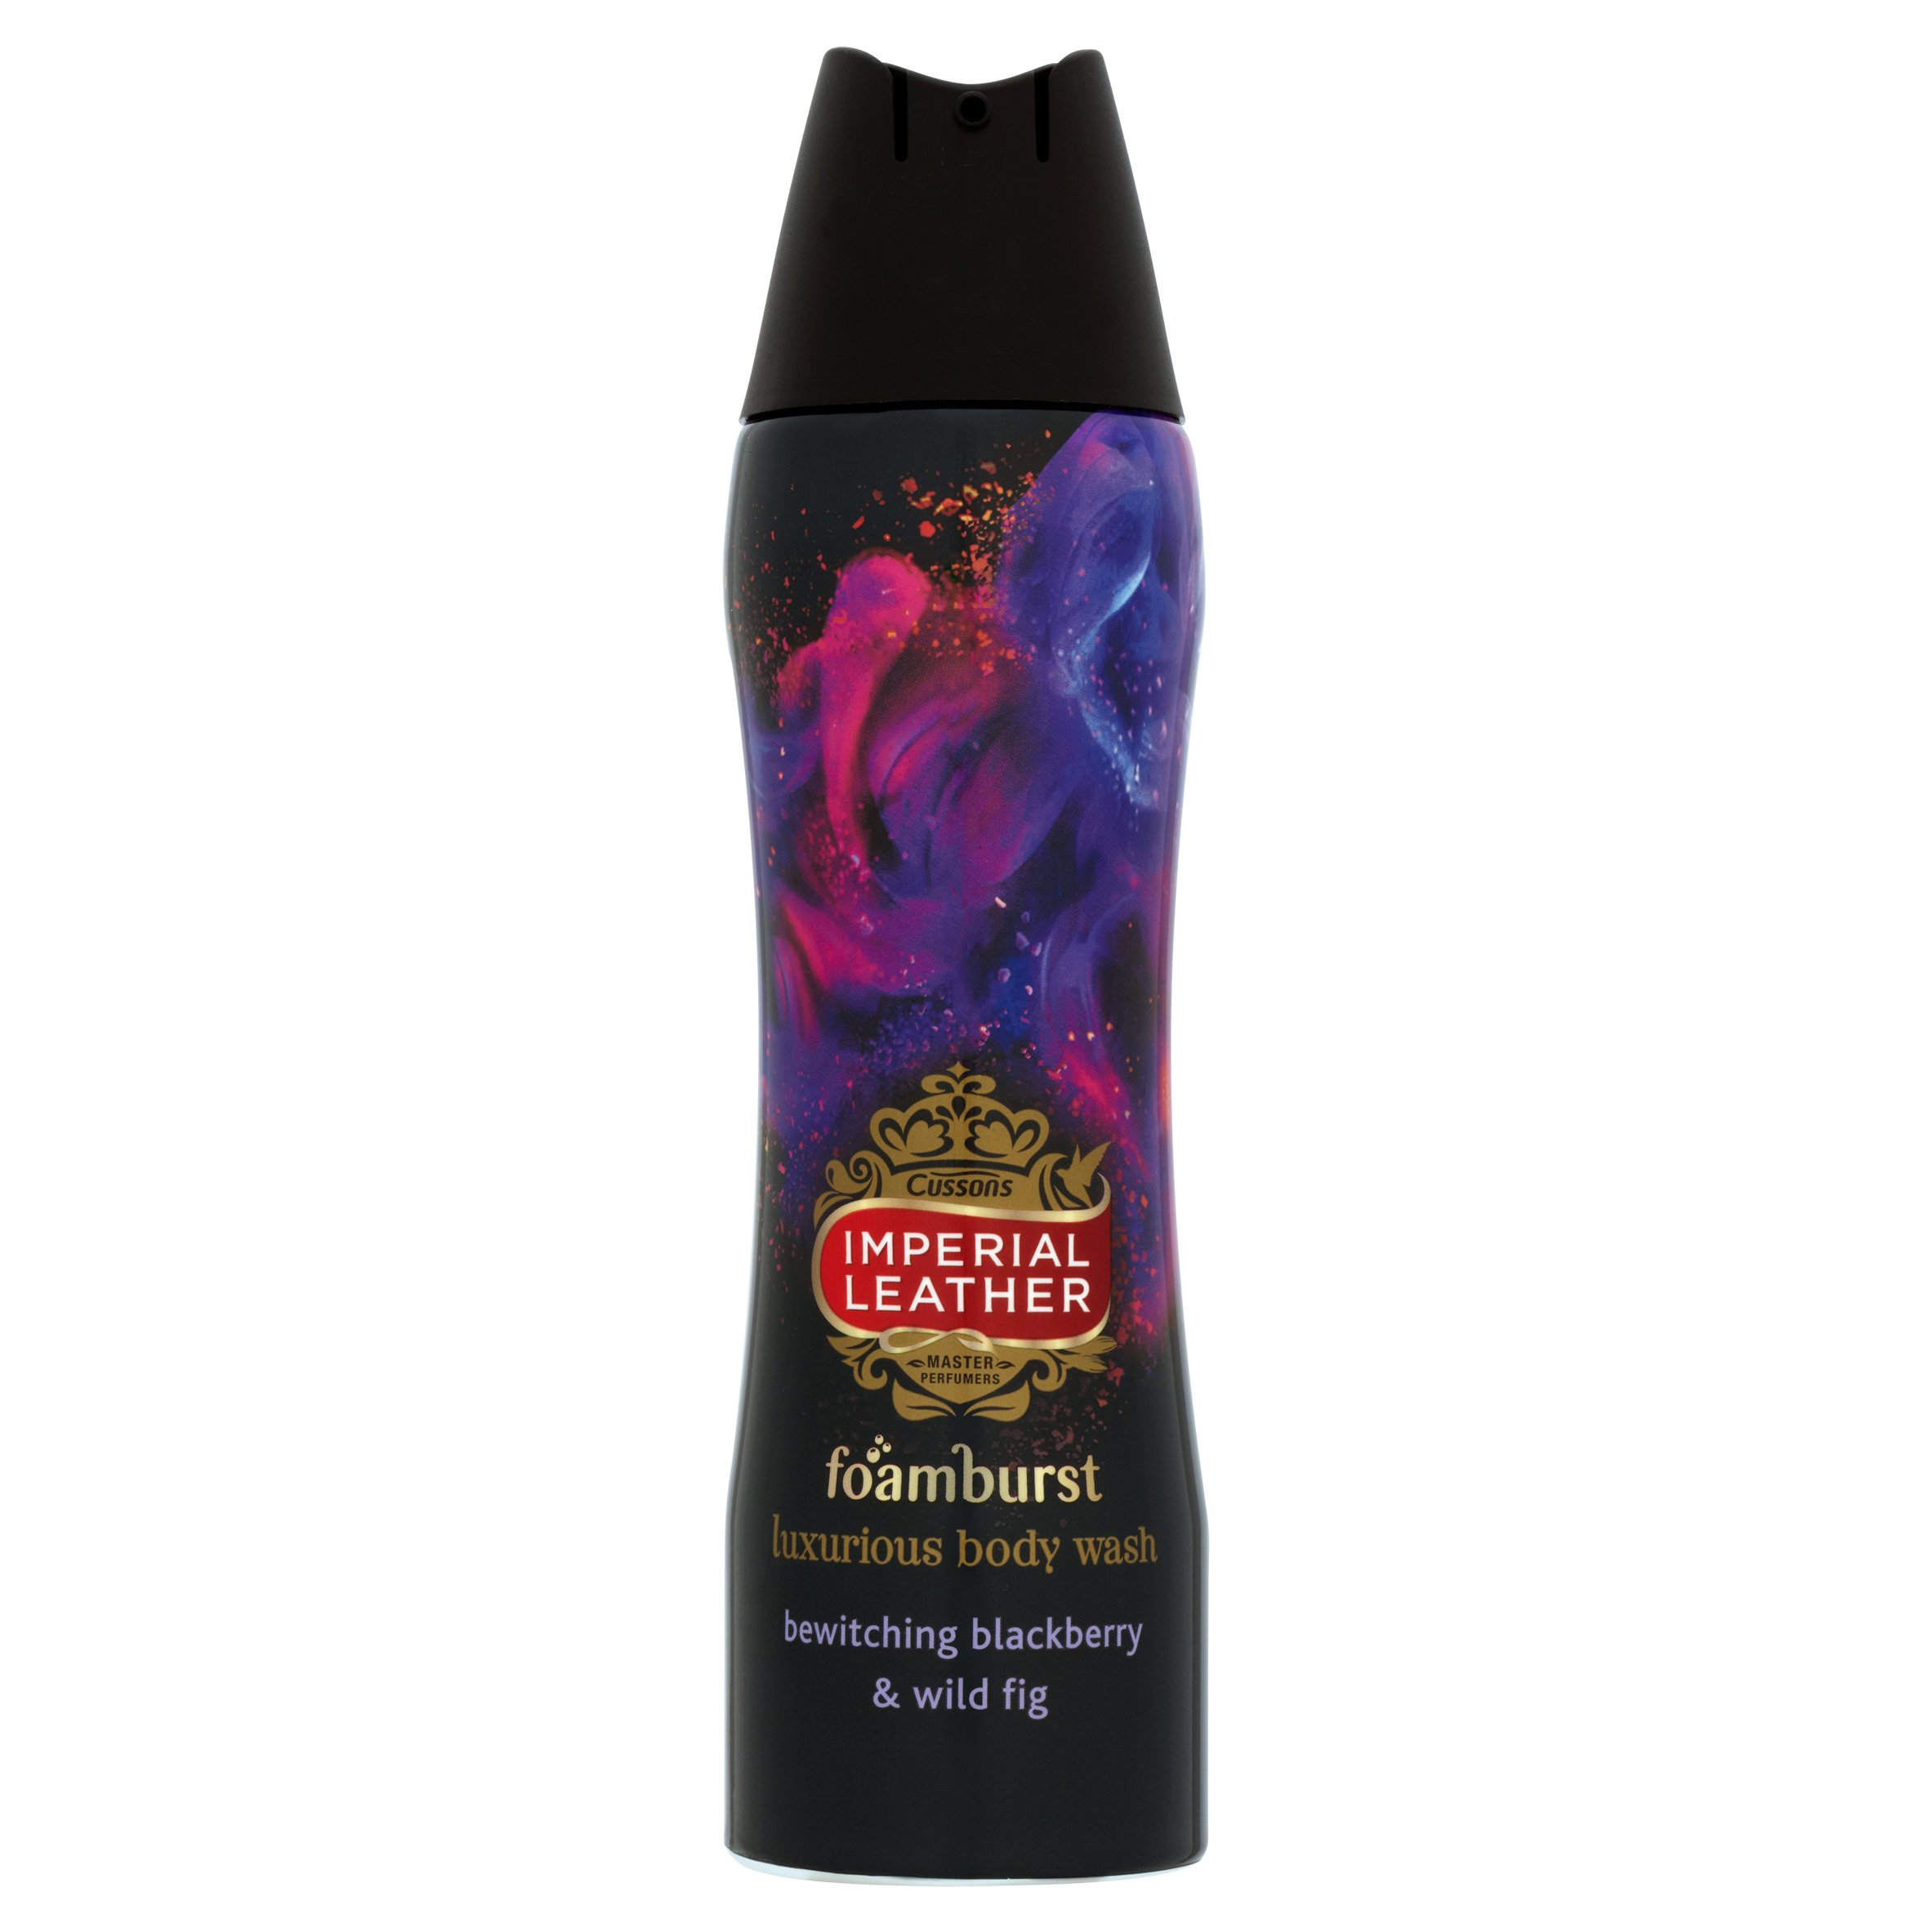 Imperial Leather Foamburst Bewitching Blackberry and Wild Fig Luxurious Body Wash 200 ml - Pack of 6